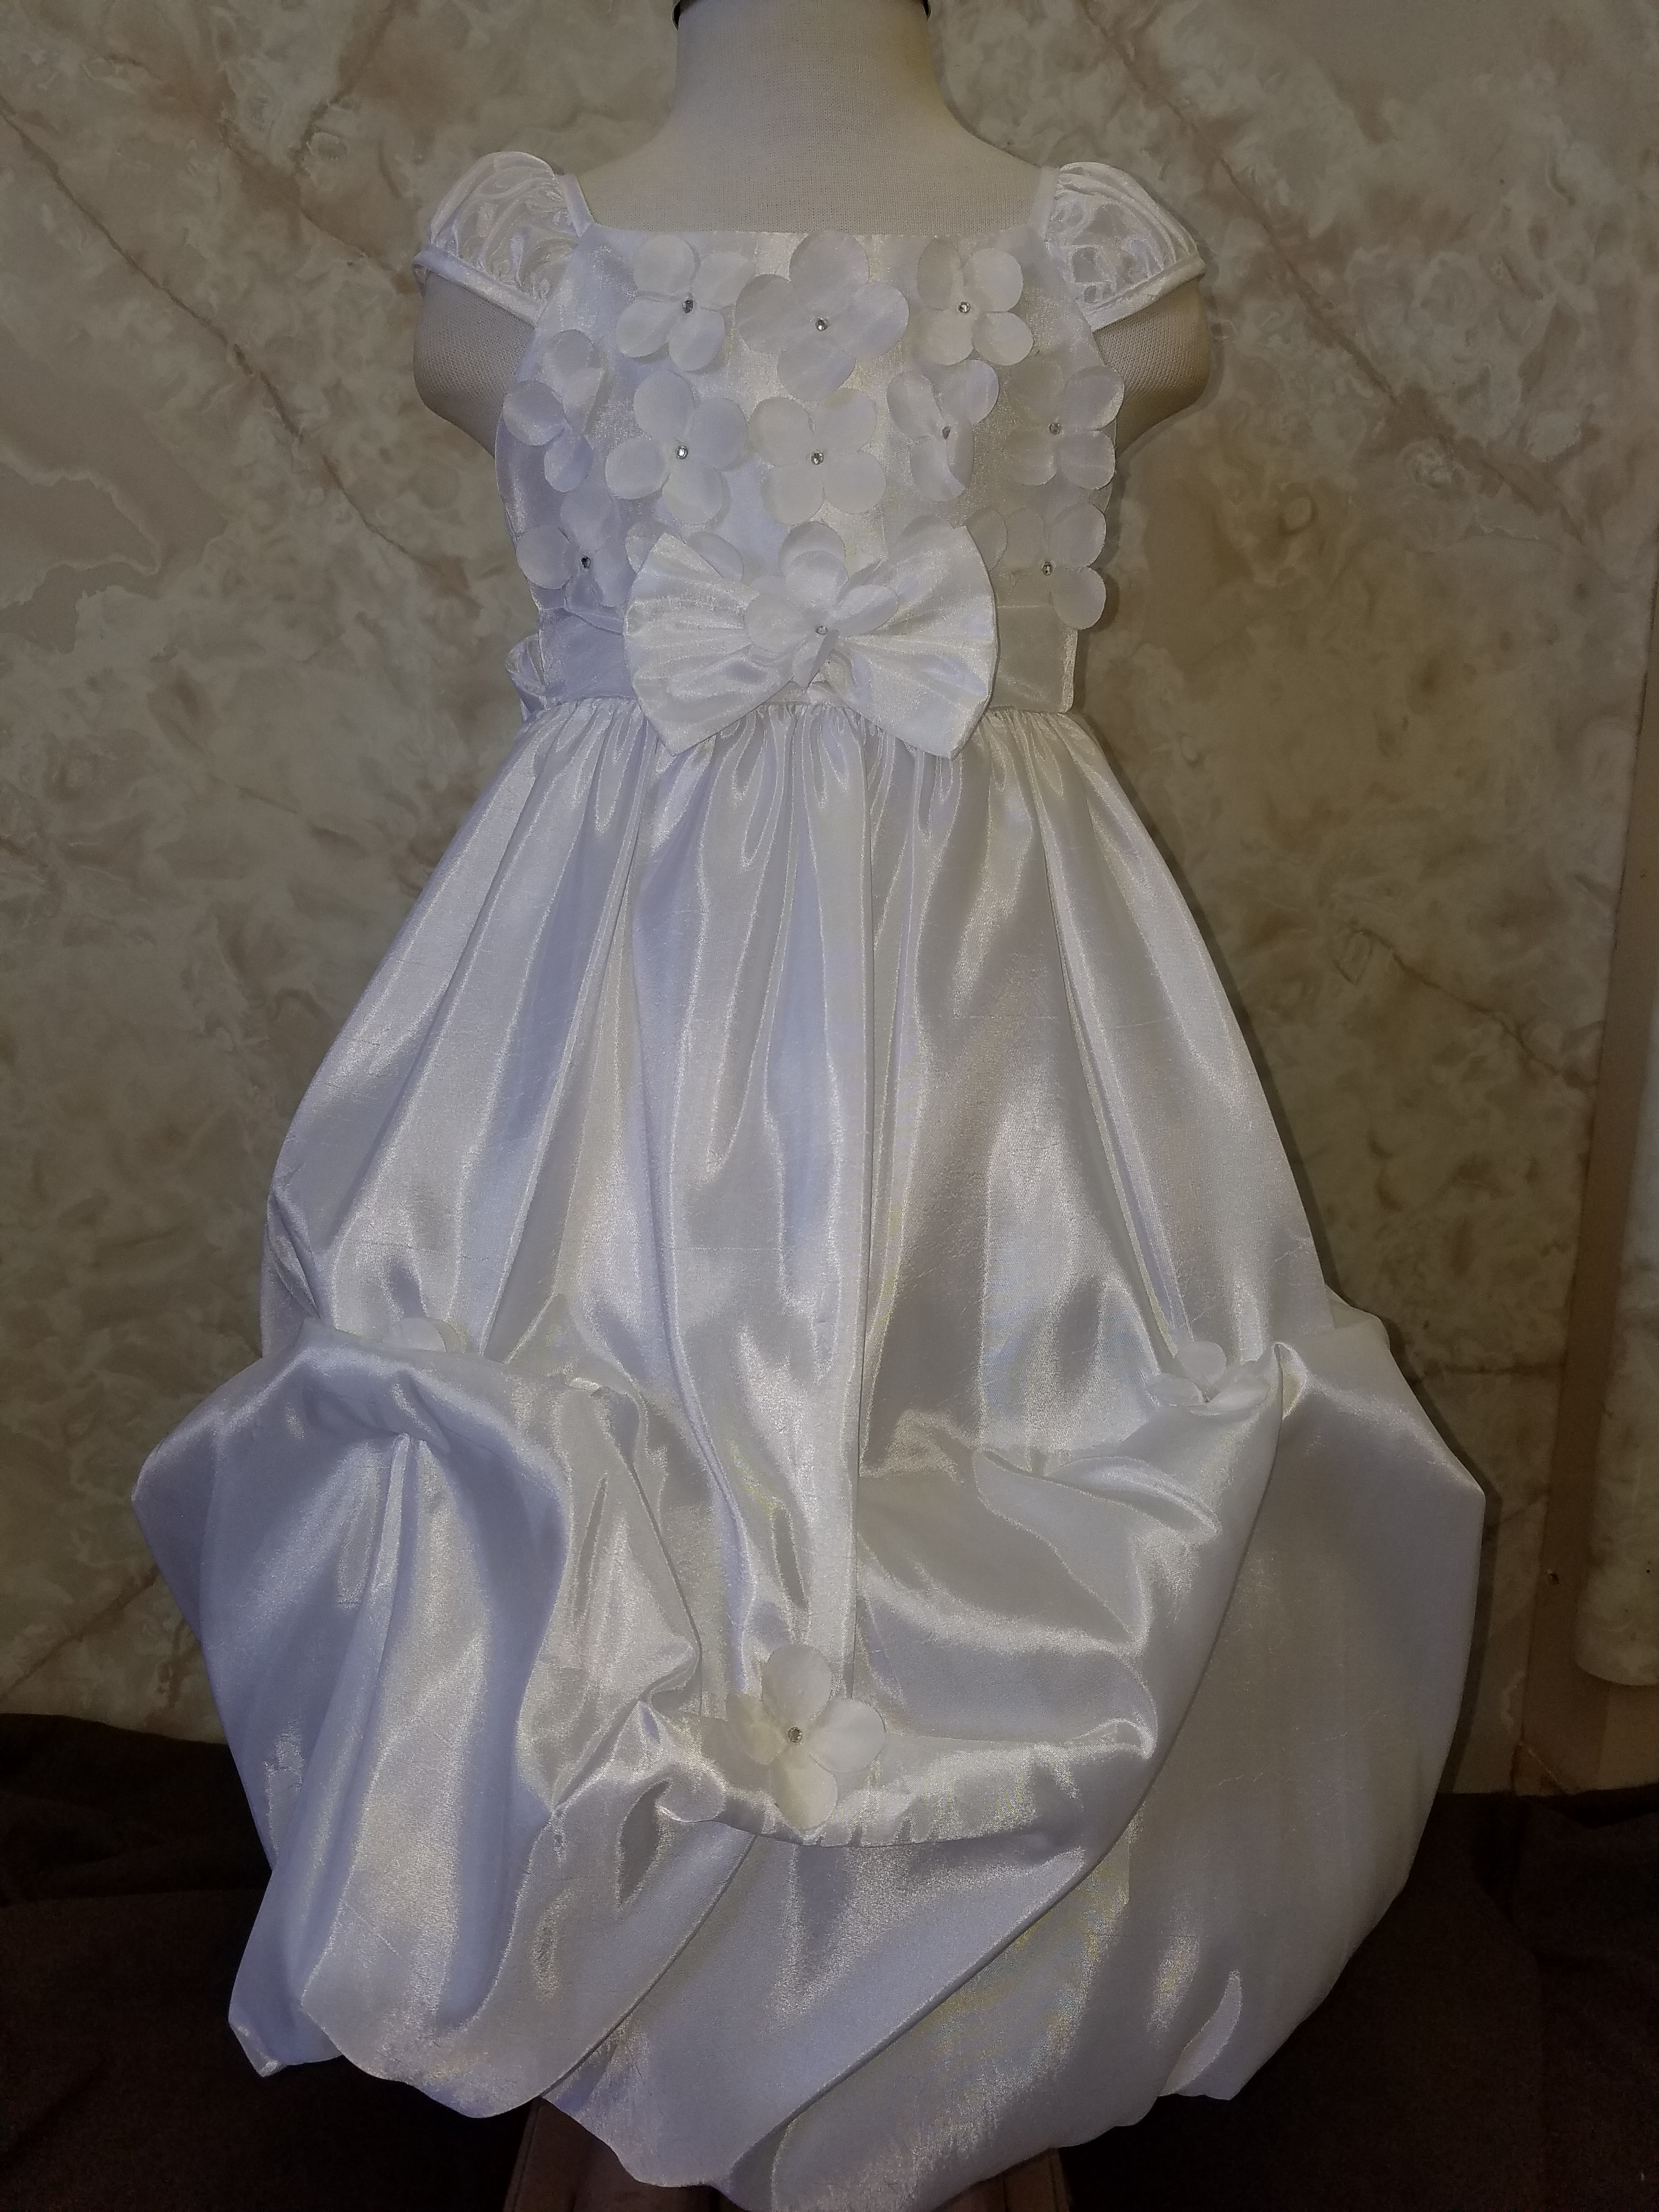 white dress with flowers on bodice